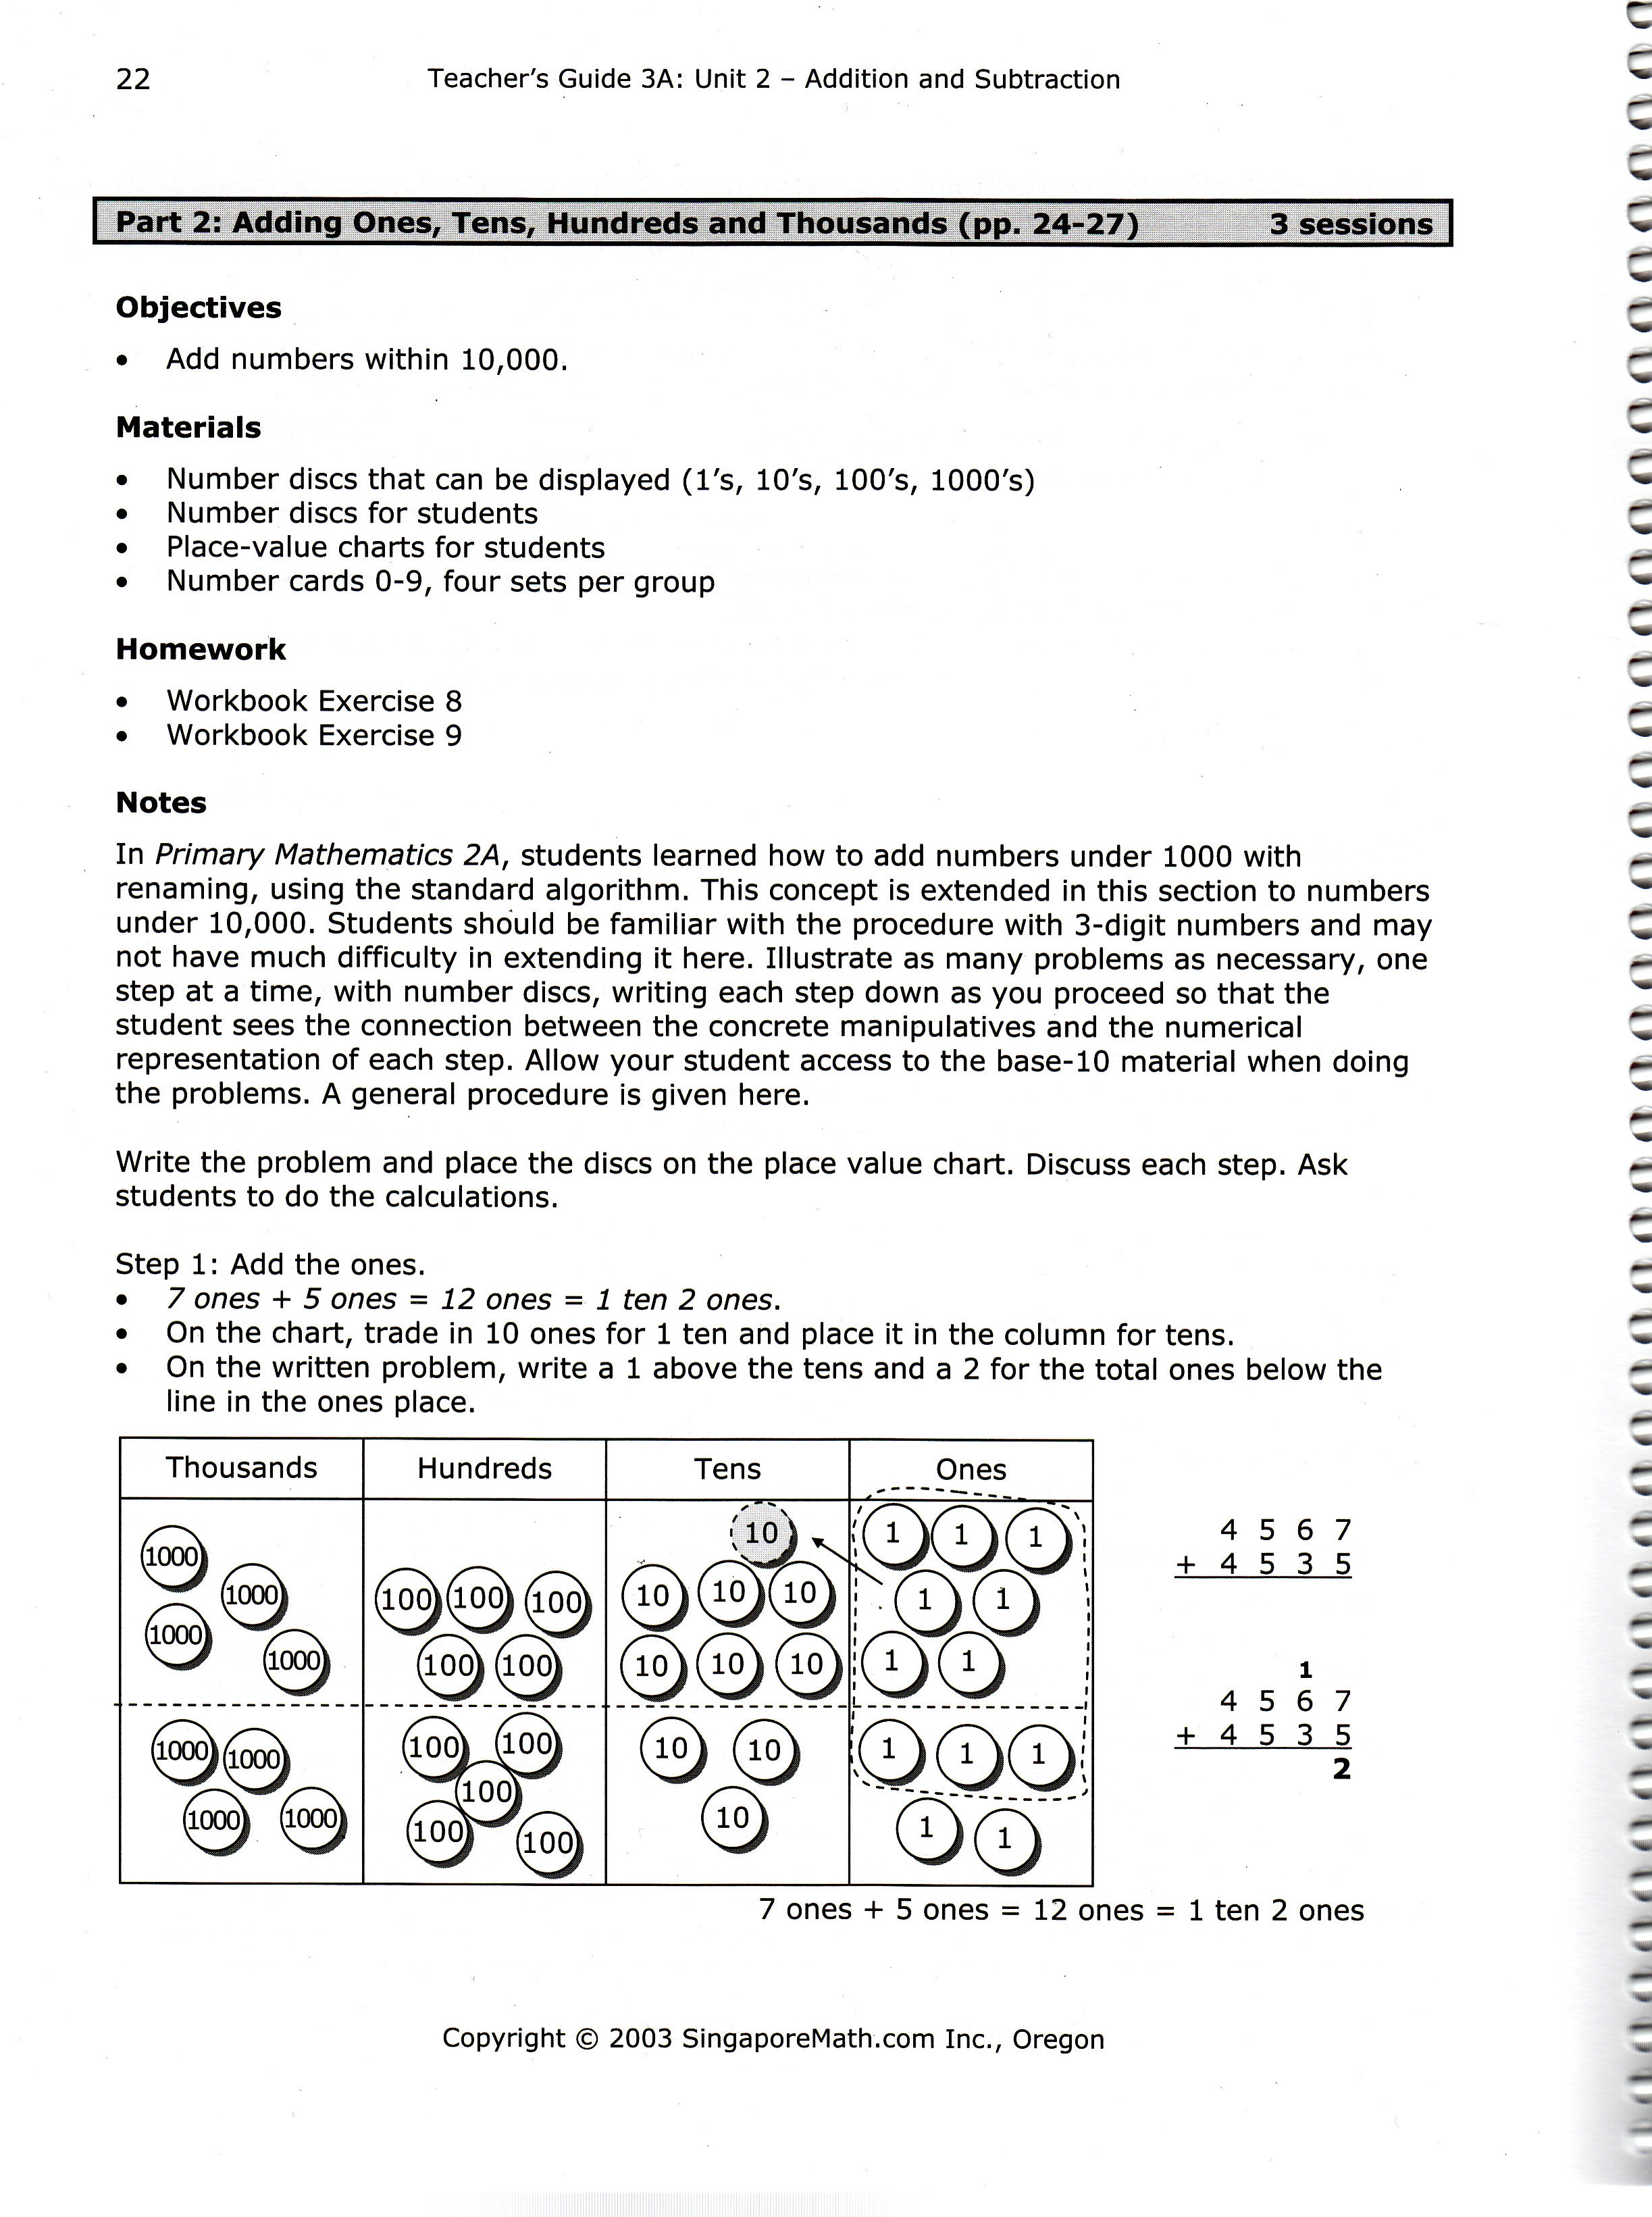 Pmusp22 for Singapore math lesson plan template